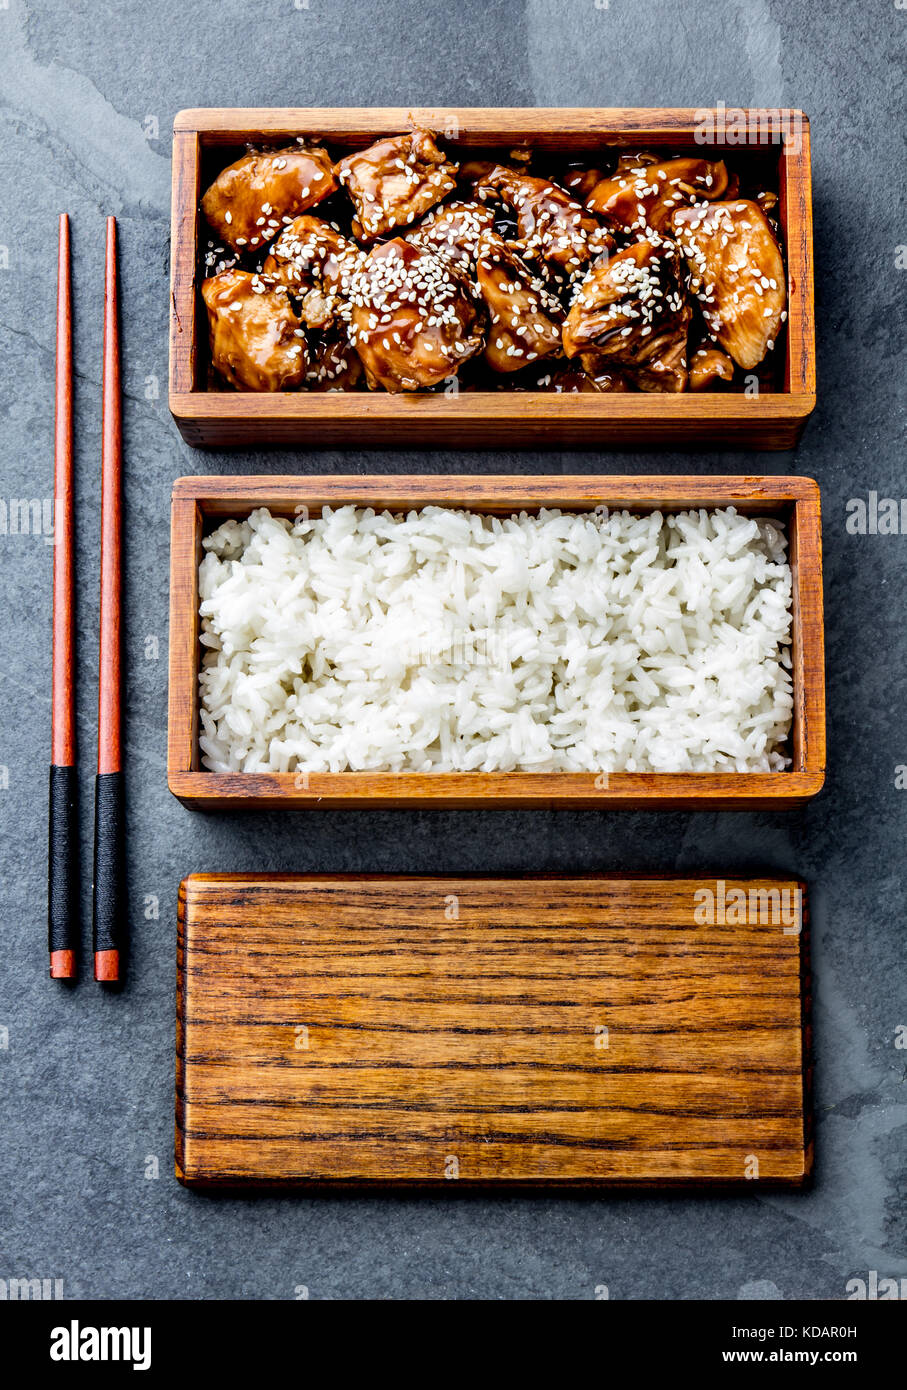 Japanese food chicken teriyaki with rice in wooden bento lunch box japanese food chicken teriyaki with rice in wooden bento lunch box slate background top view forumfinder Gallery